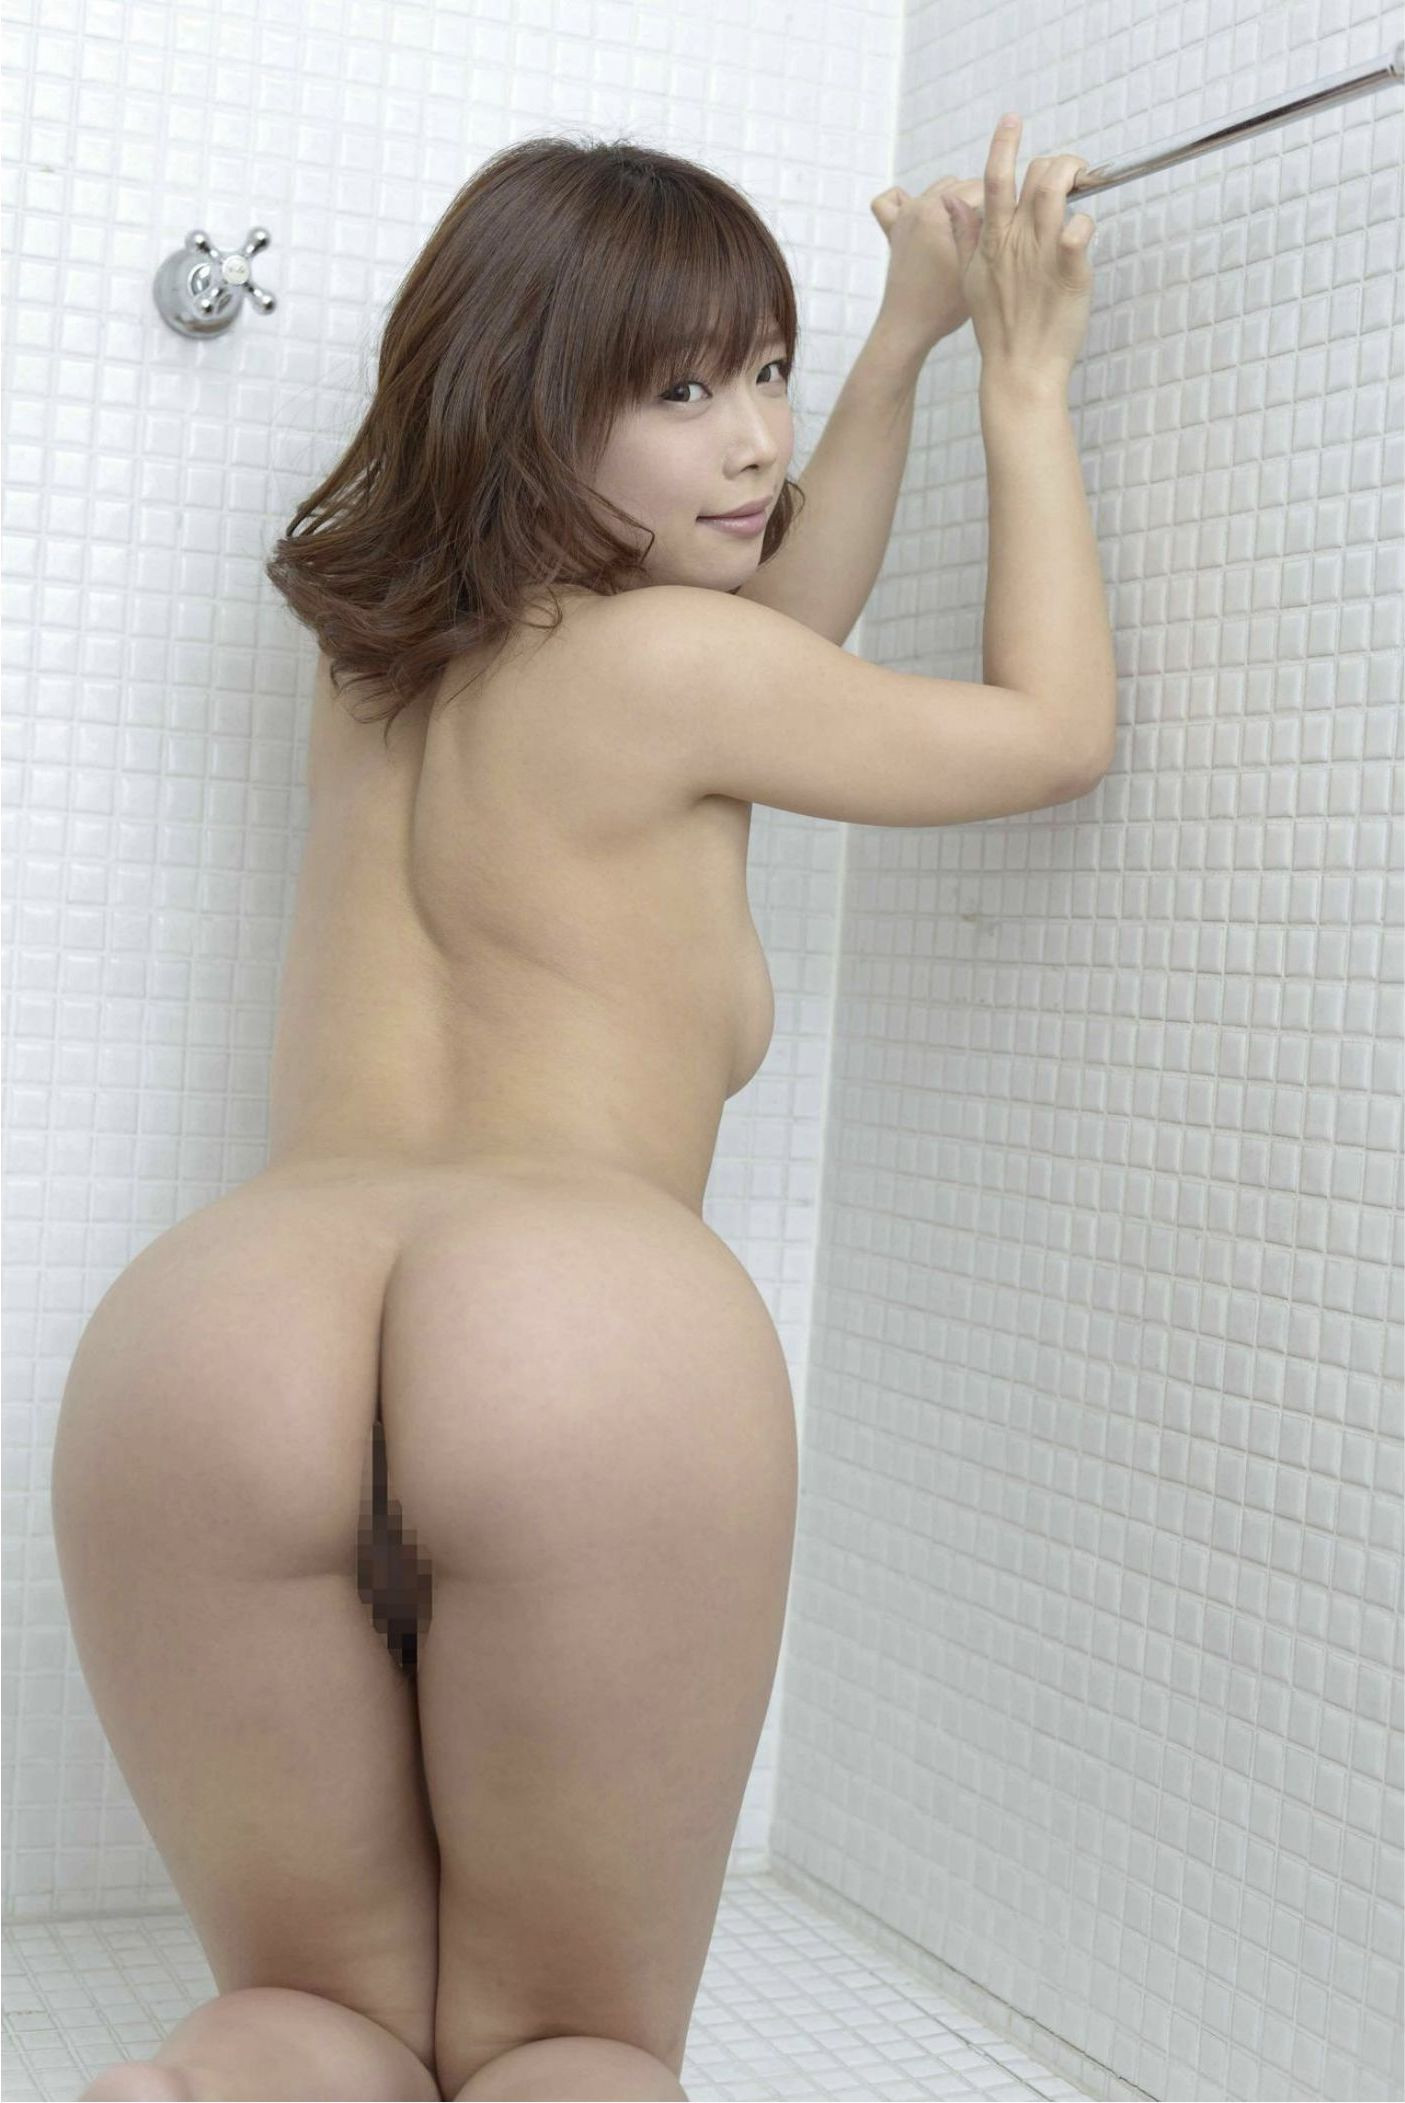 SOFT ON DEMAND GRAVURE COLLECTION 紗倉まな02 photo 115